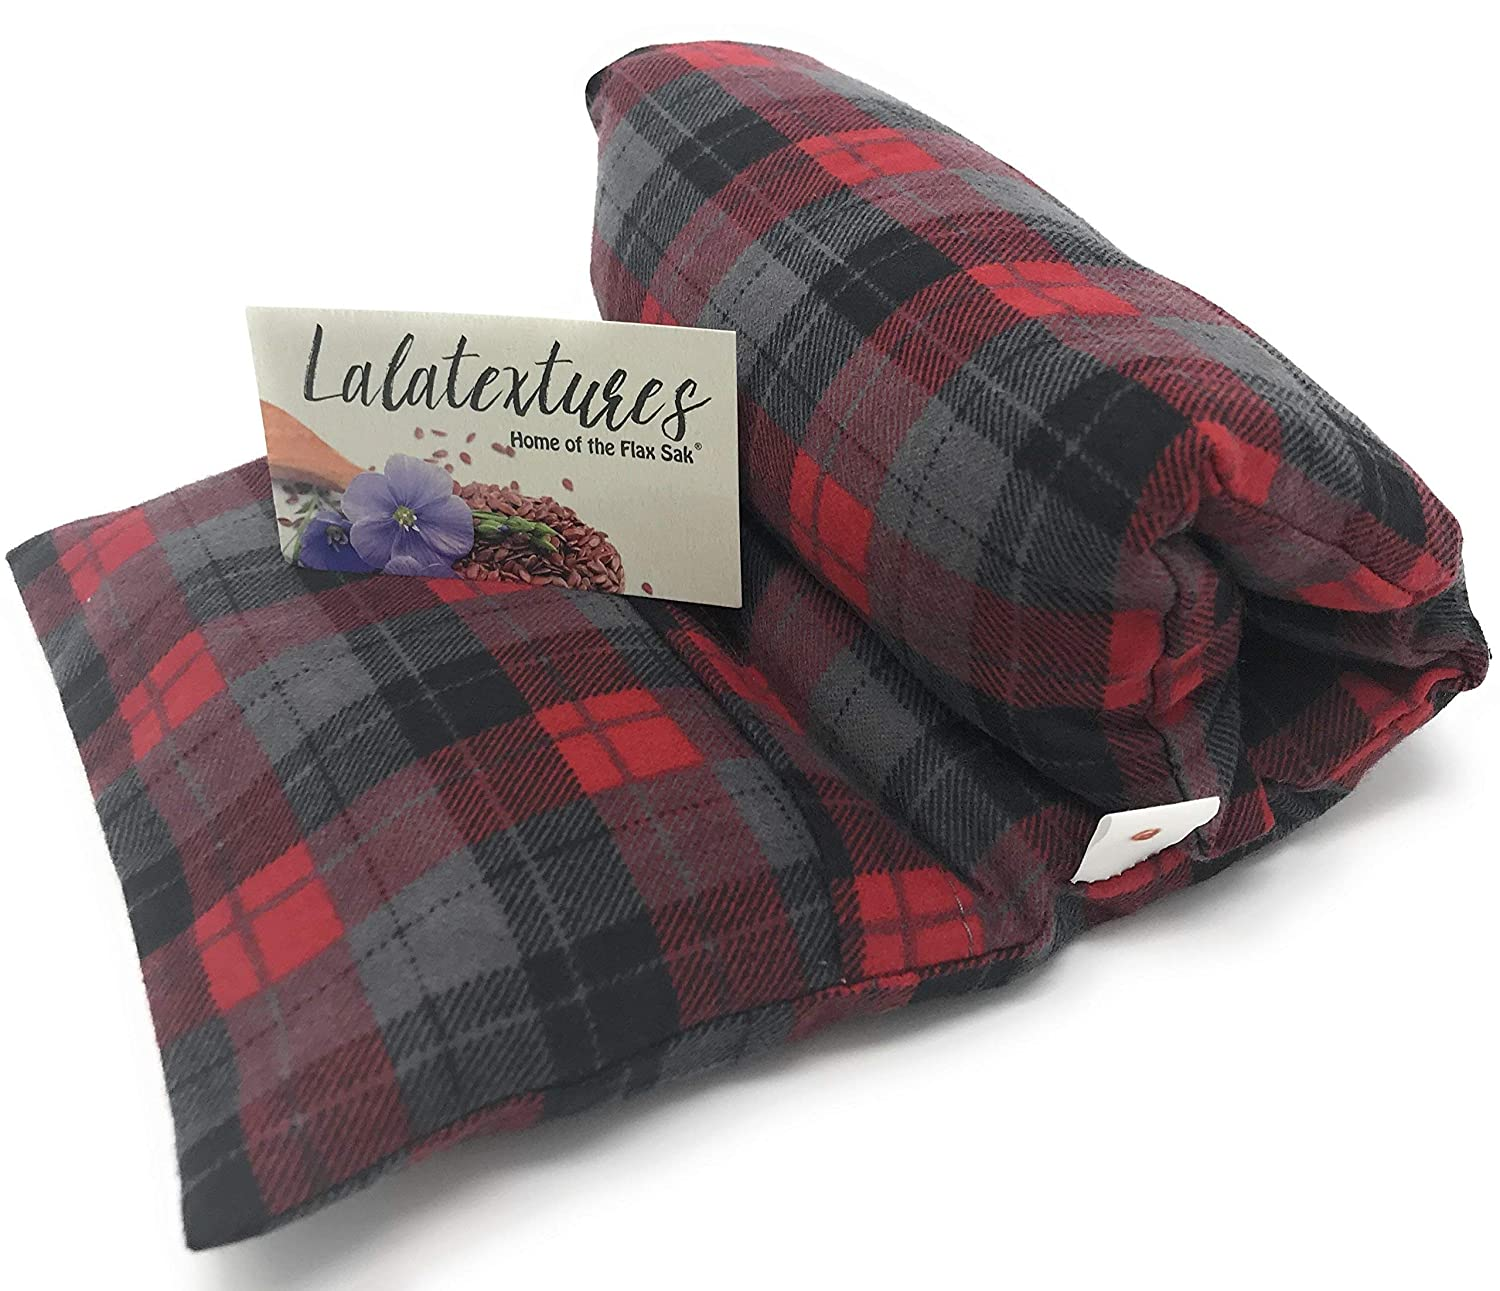 Extra Large Lavender Infused Microwave Heating Pad by Flax Sak®. Hot/Cold Pack with Removable/Washable Cover. Charcoal Grey and Red